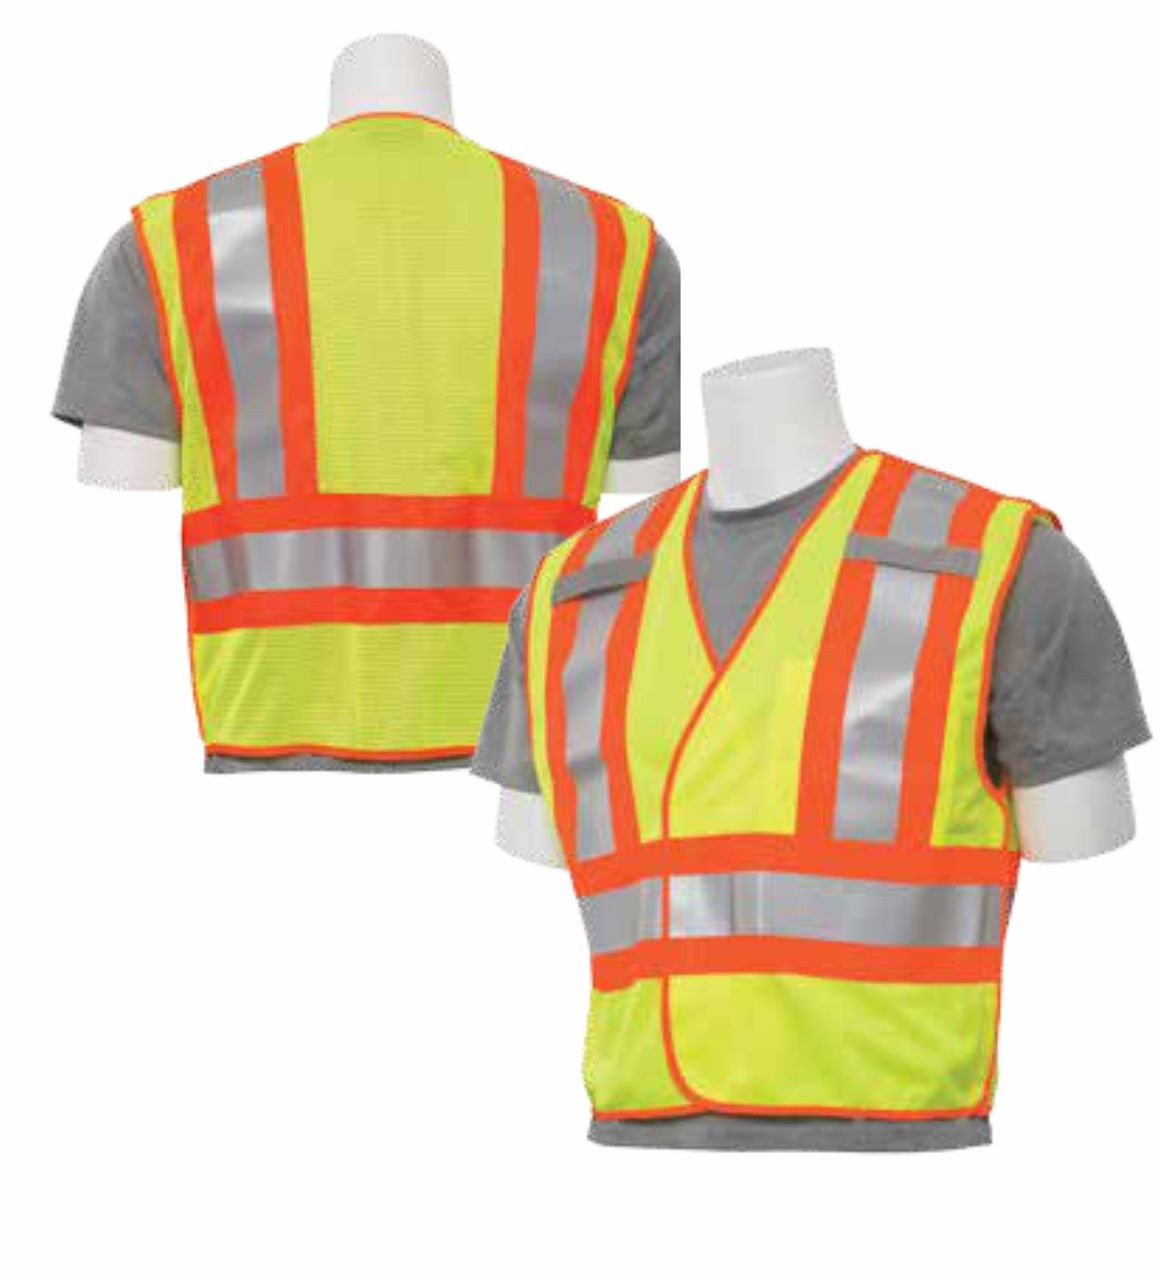 ERB S345 Class 2 Safety Vest 5 pt Breakaway - Public Safety